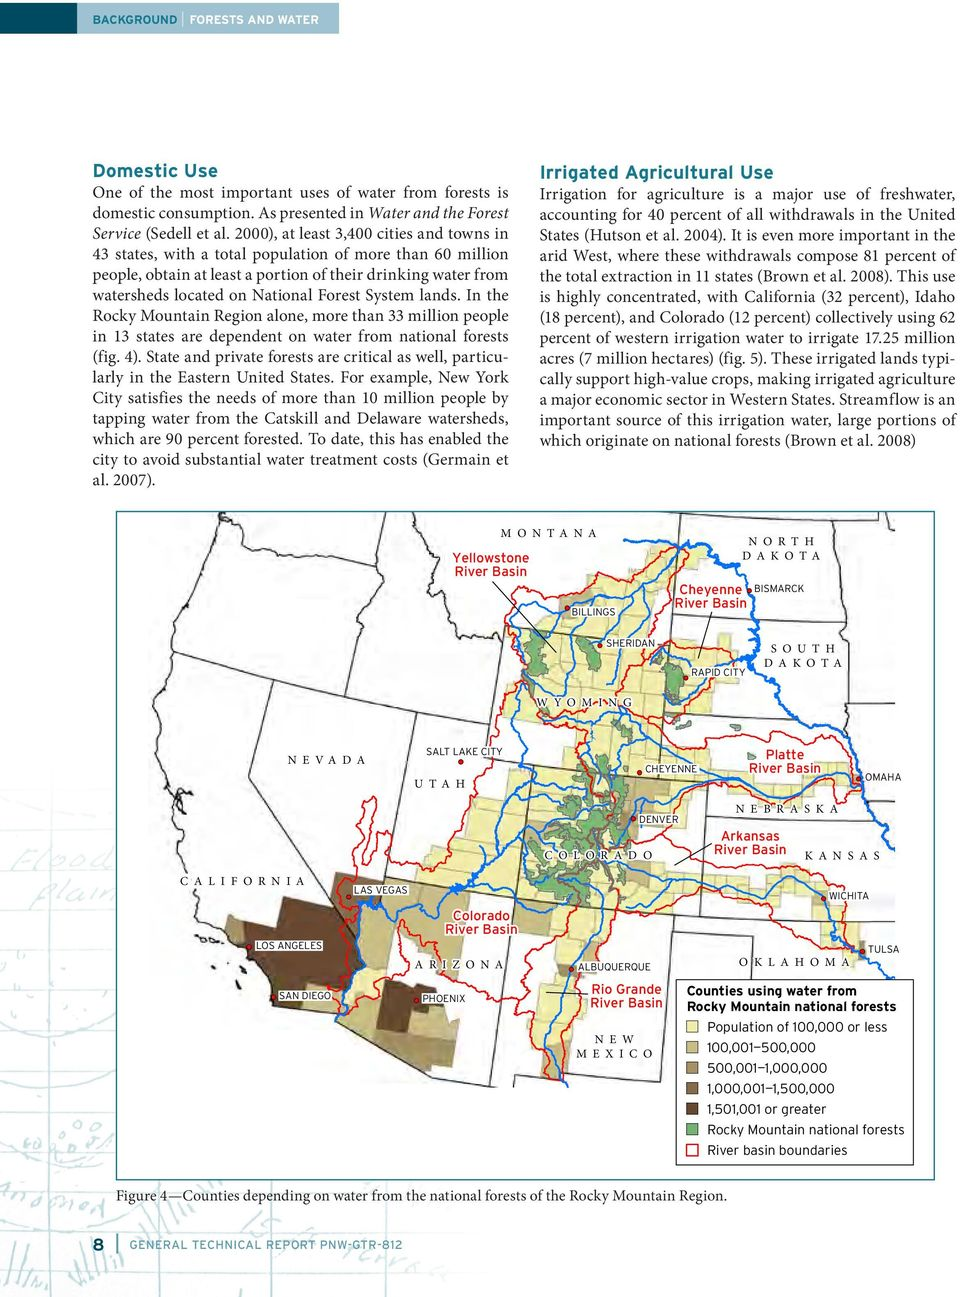 Forest System lands. In the Rocky Mountain Region alone, more than 33 million people in 13 states are dependent on water from national forests (fig. 4).